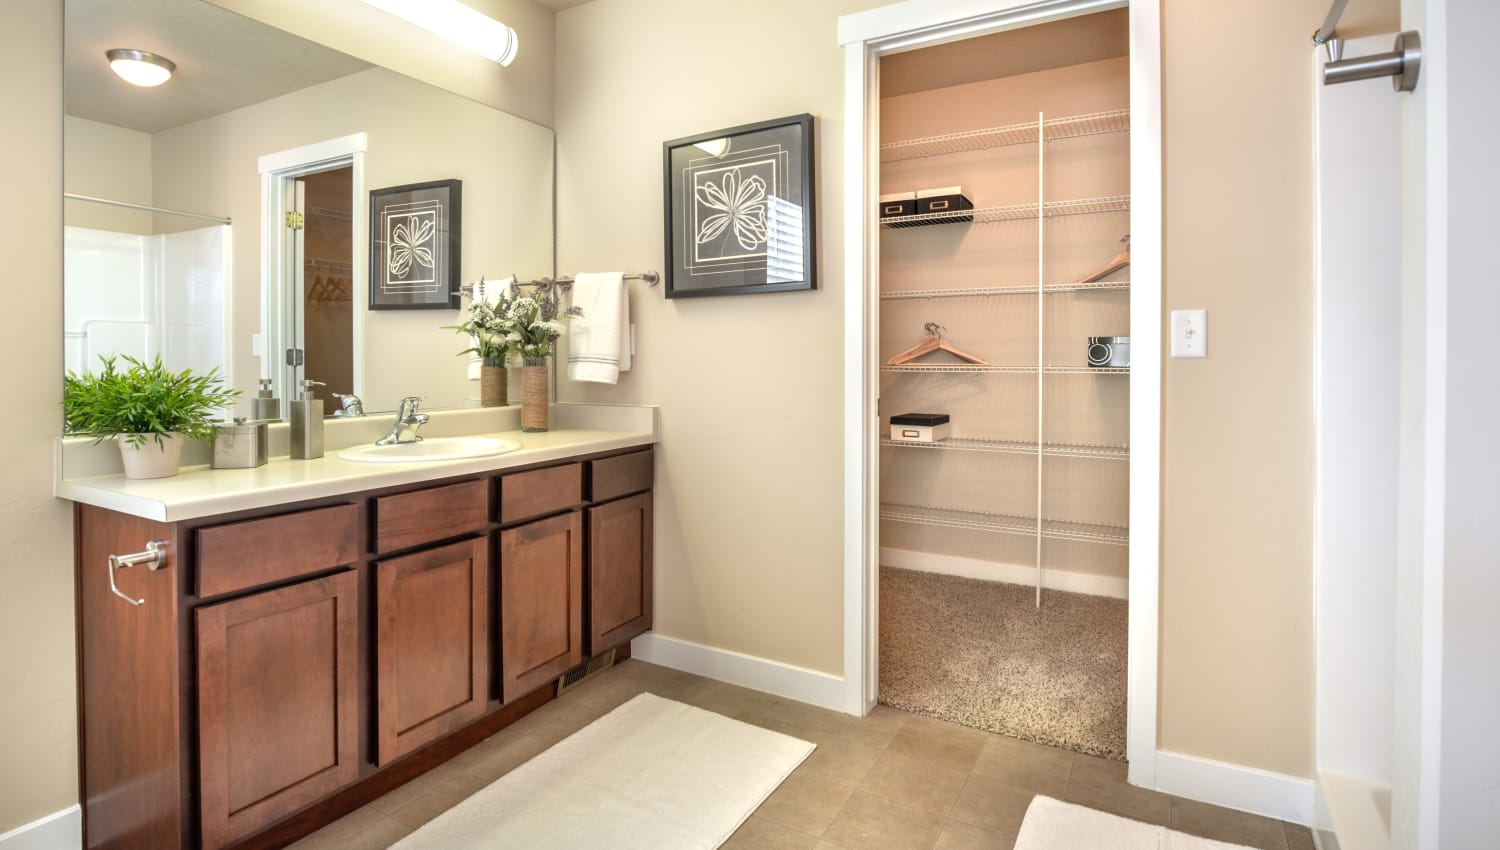 Bathroom at Olympus at the District in South Jordan, Utah features spacious closet